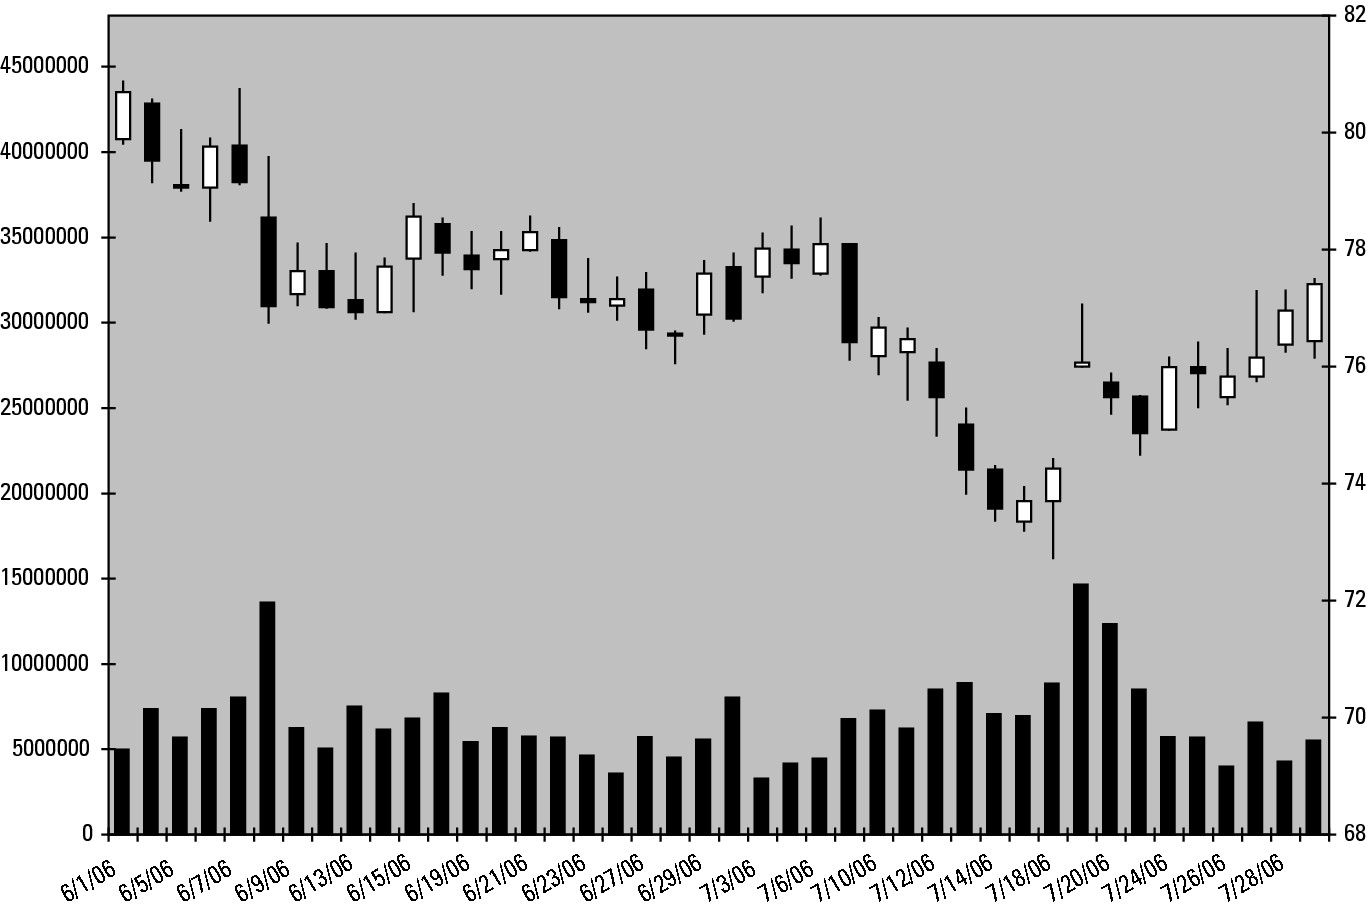 Figure 4-10: A basic Excel candlestick chart with volume.